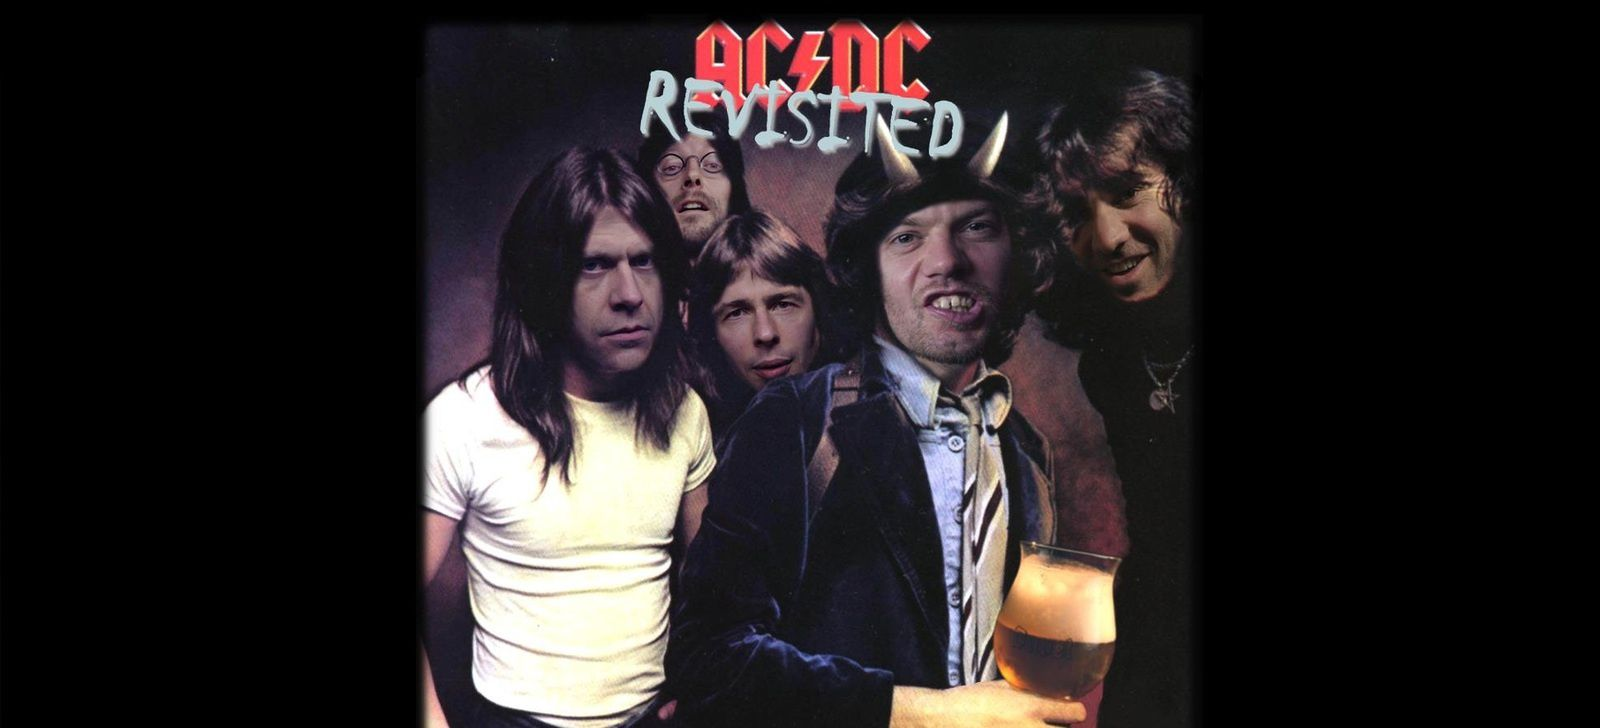 AC/DC Revisited (AC/DC tribute band) @ Rock Classic - 21/05/2016 - 21h00 - Entrée gratuite !